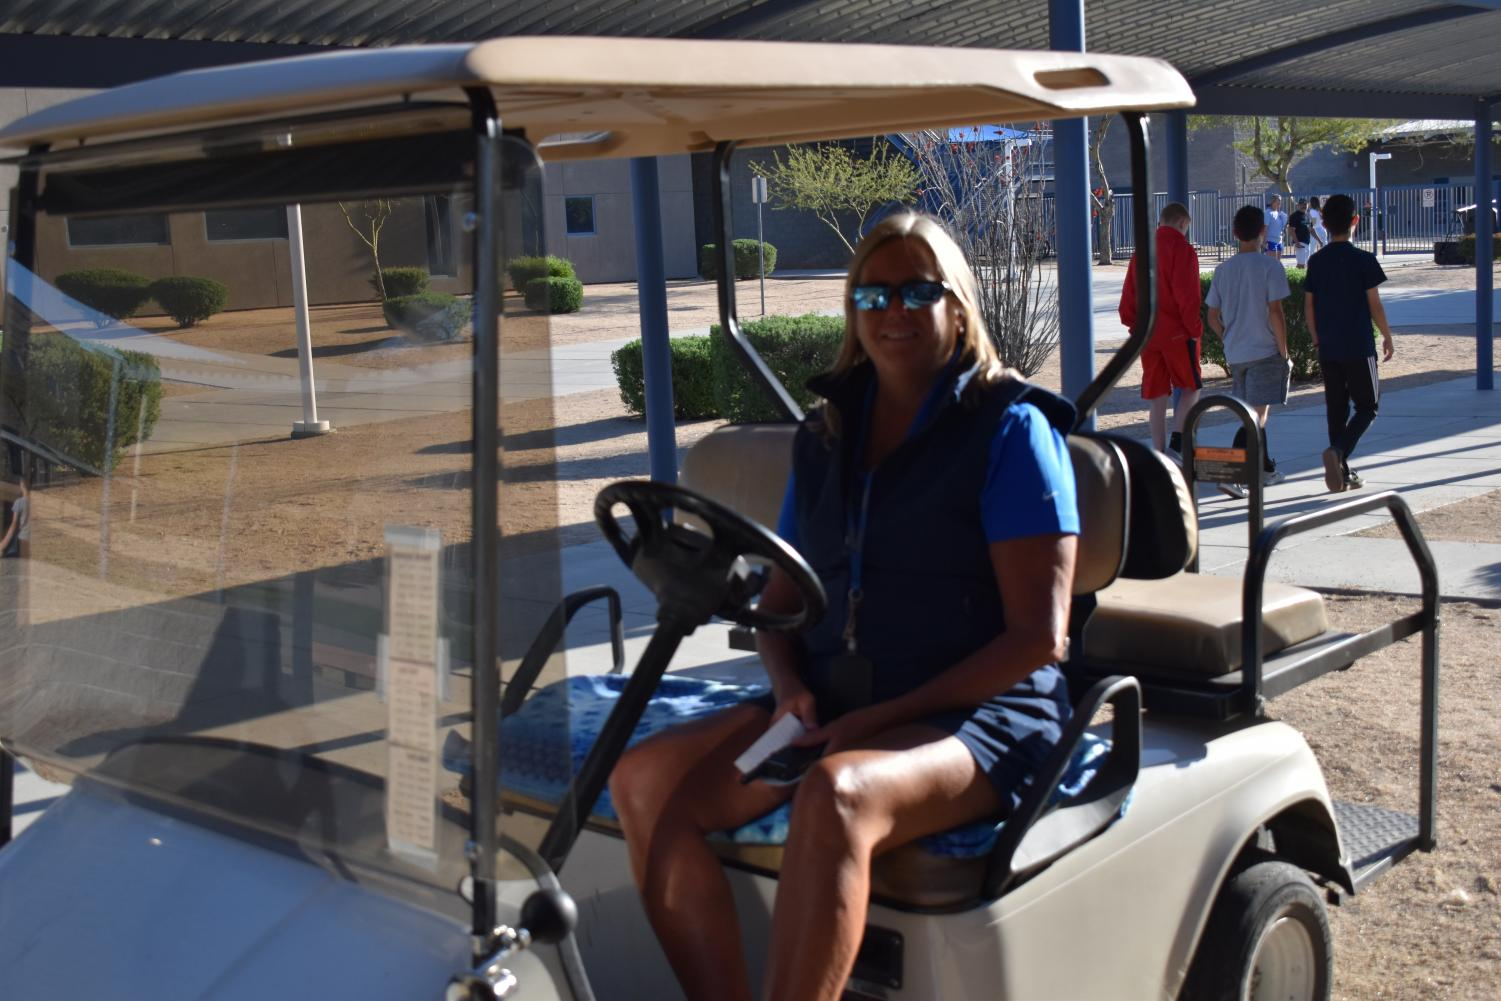 Darcy Wine, security staff, poses for a photo on one of the golf carts used to patrol the campus.